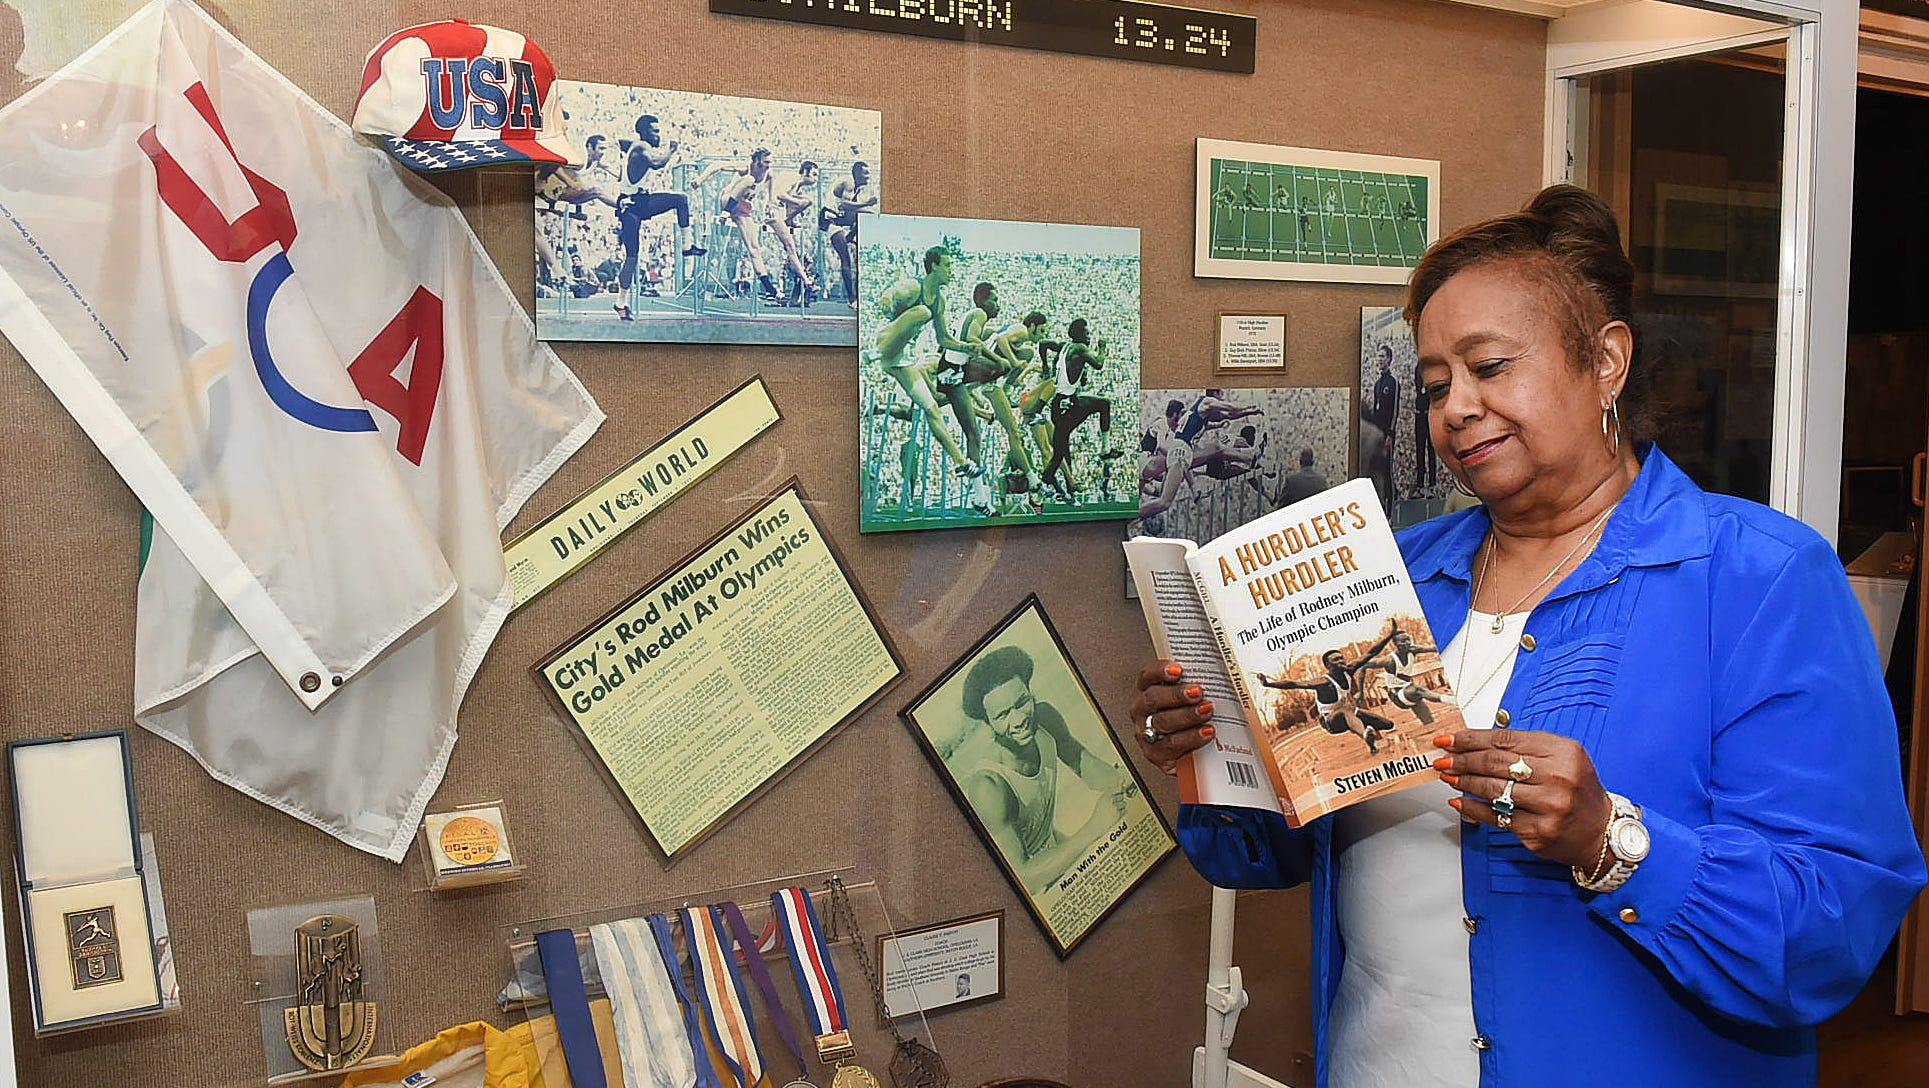 From poverty to gold medal, Rodney Milburn chronicled in new book